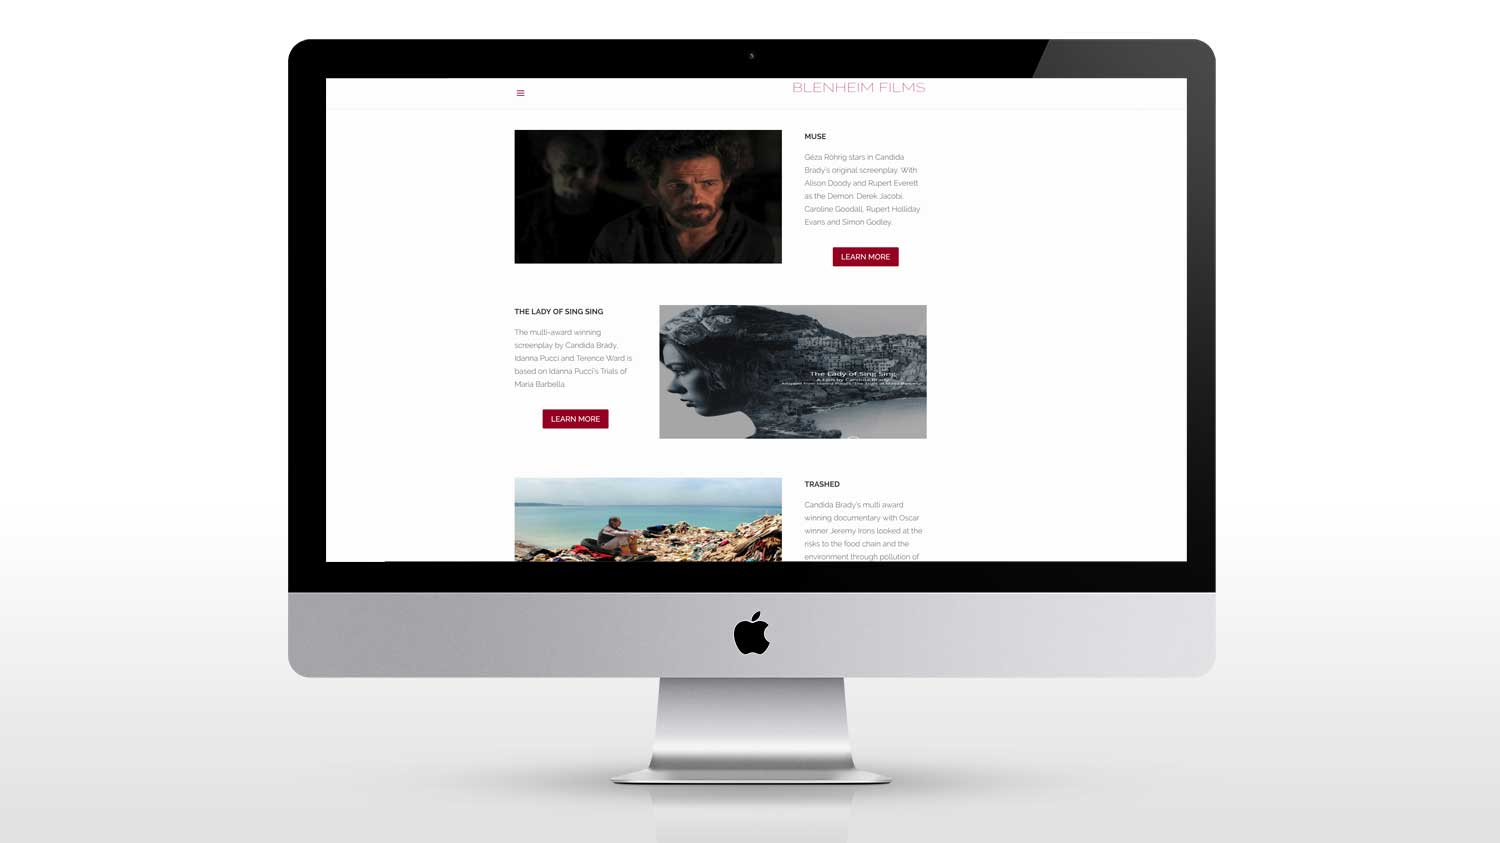 New web design photograph for blenheim films